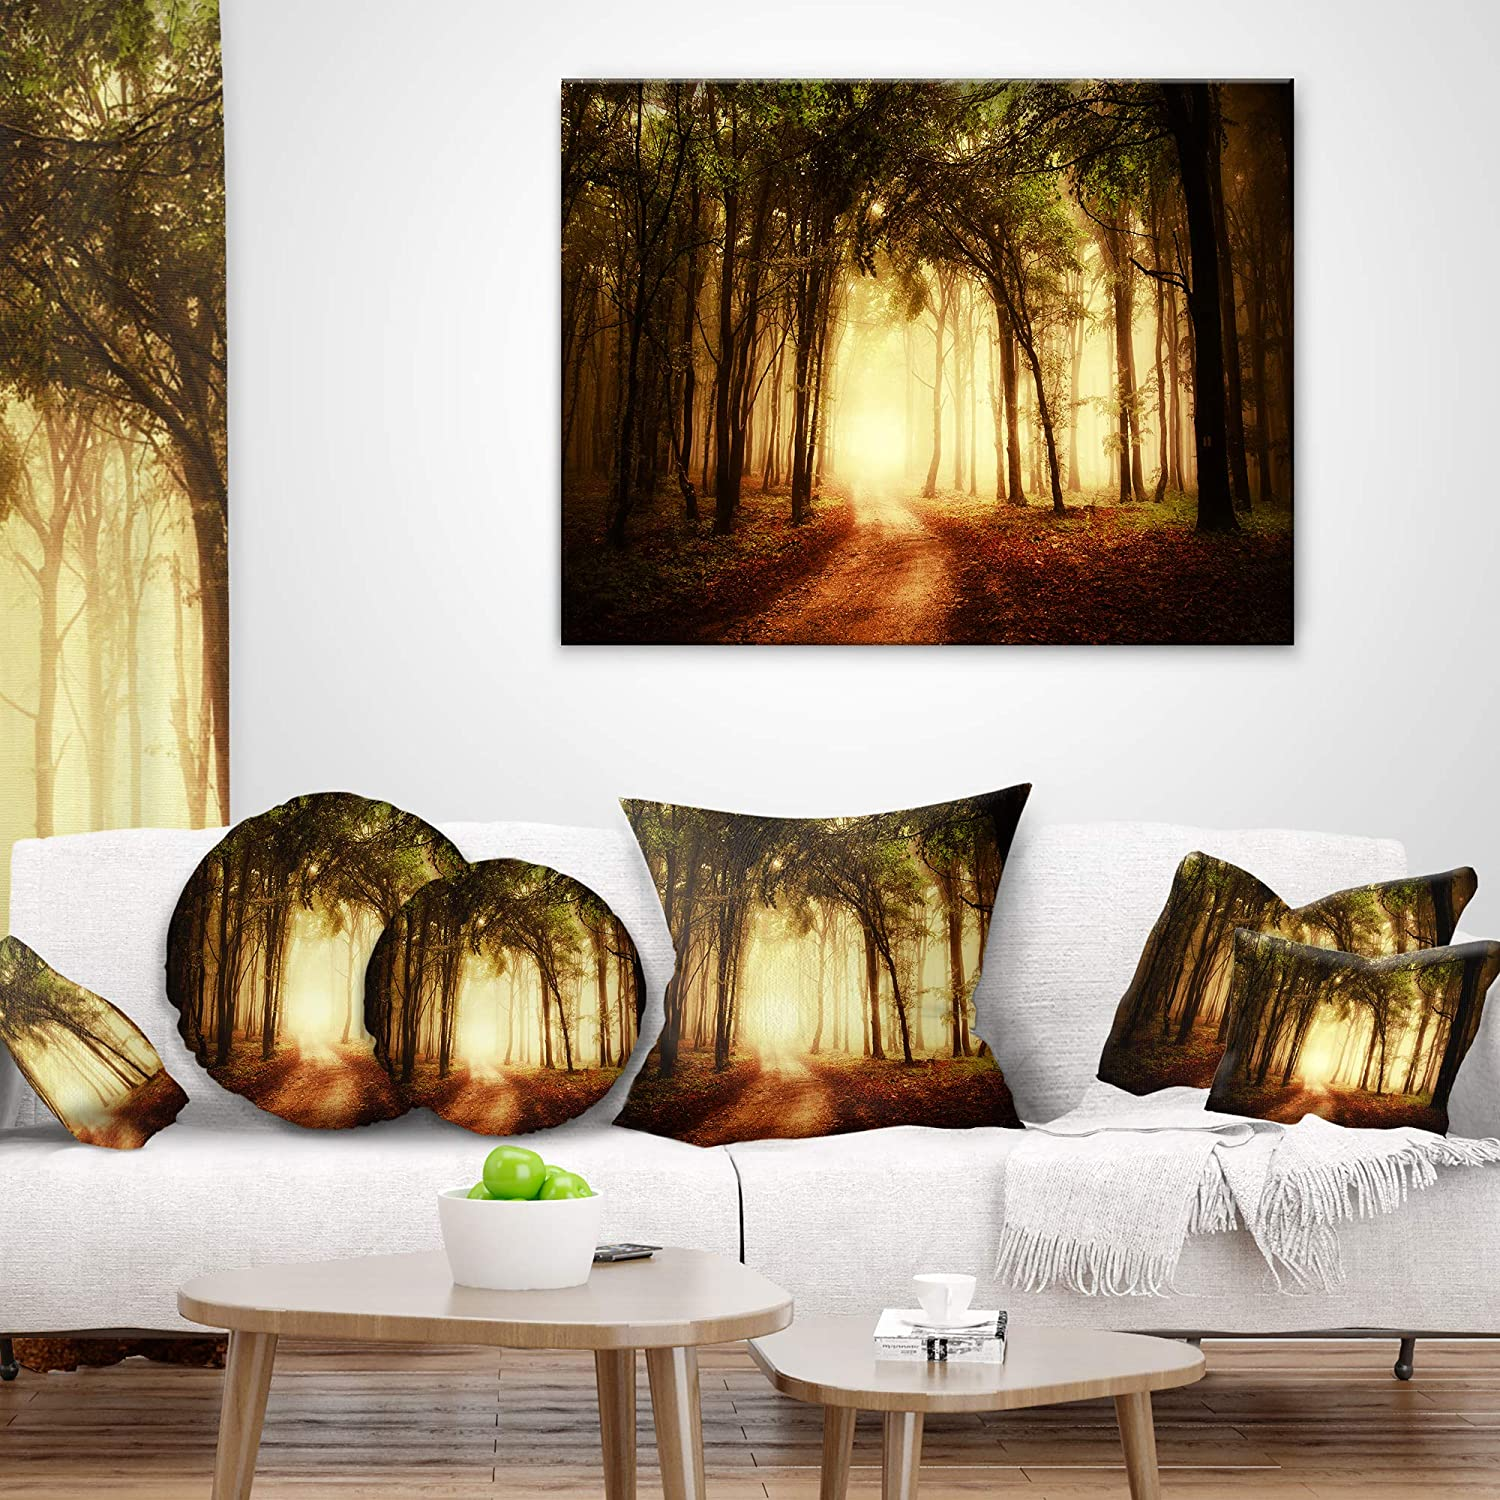 20 Round Designart Cu9791 20 20 C Golden Forest In Fall Morning Landscape Photography Throw Cushion Pillow Cover For Living Room Sofa Bedding Decorative Pillows Inserts Covers